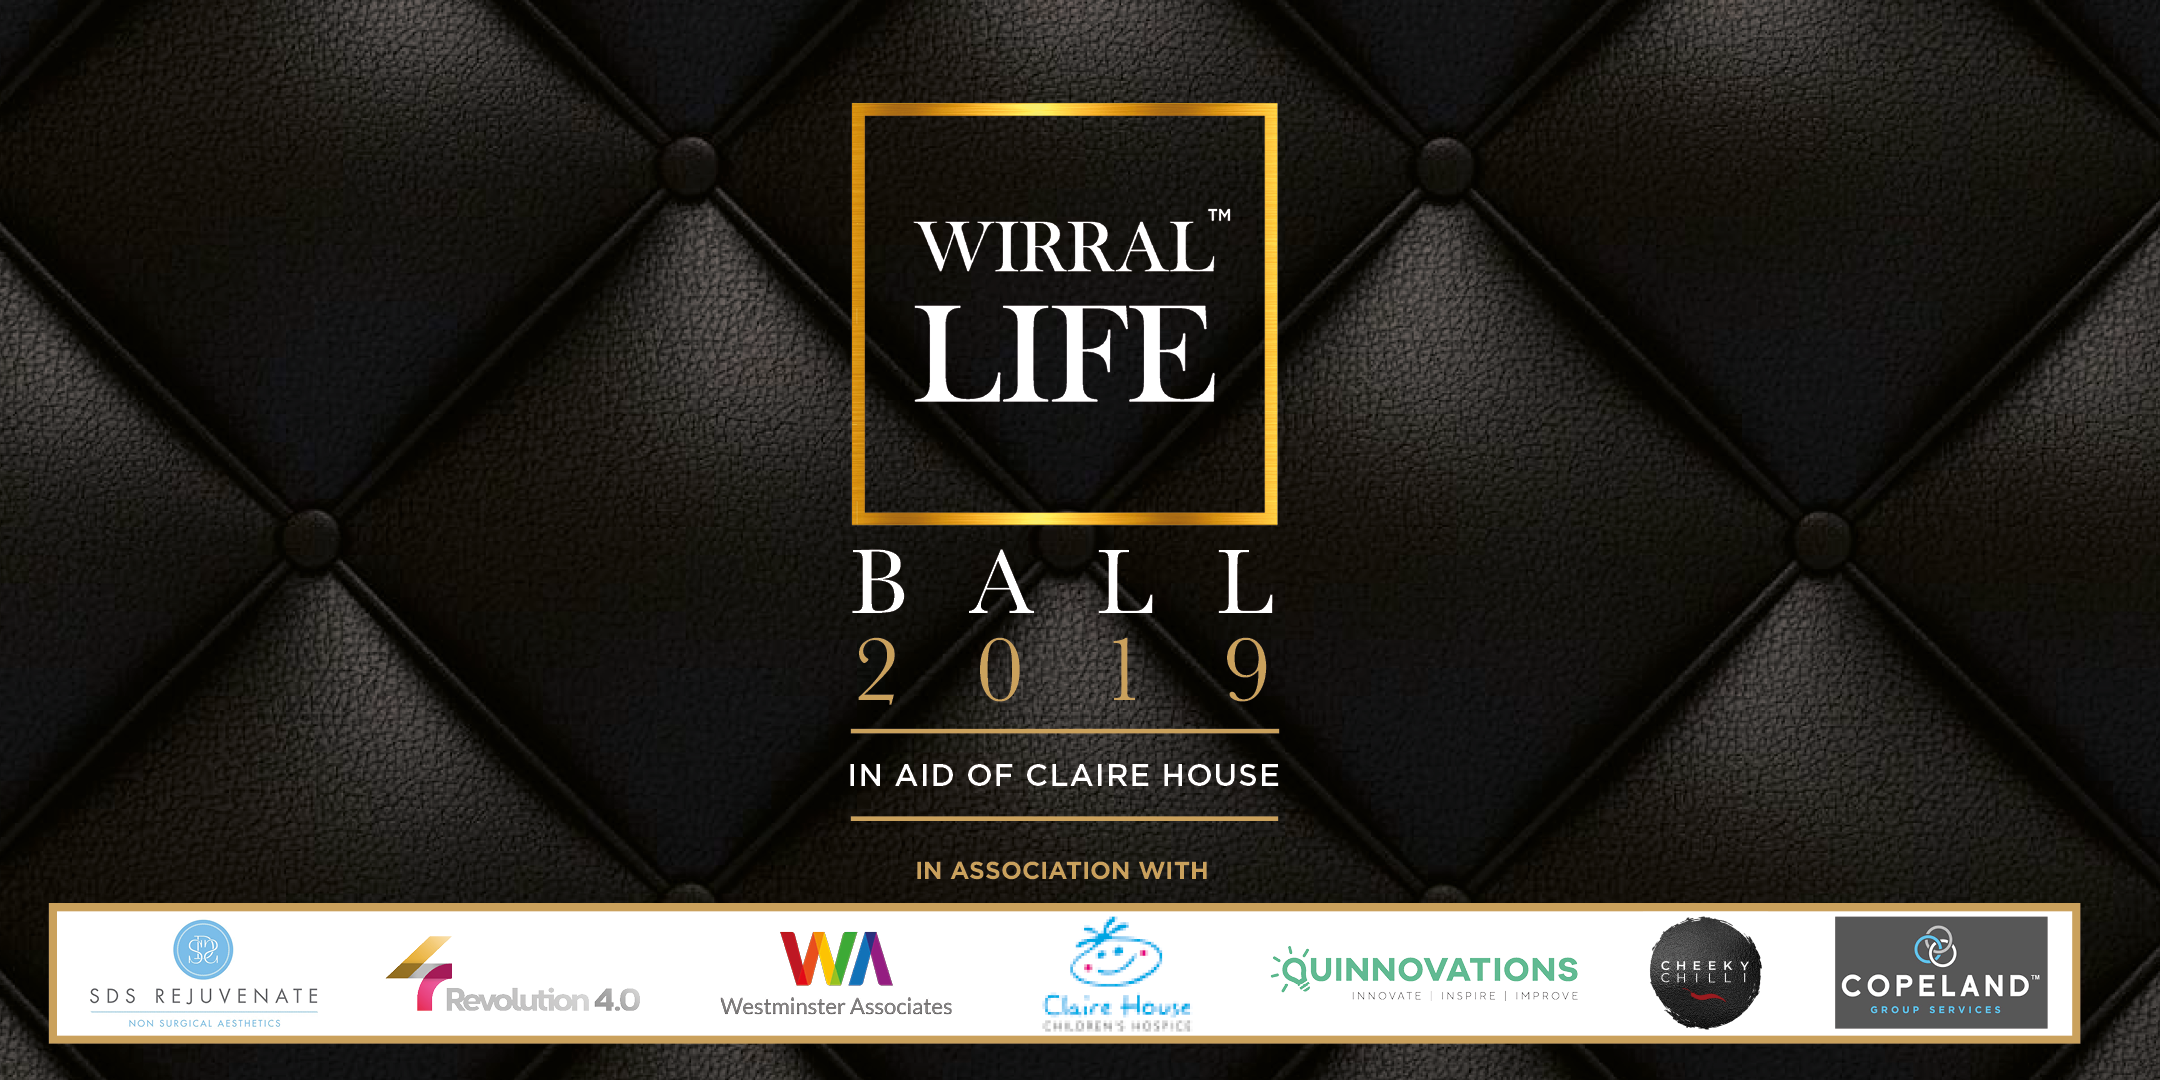 Wirral Life Ball 2019!